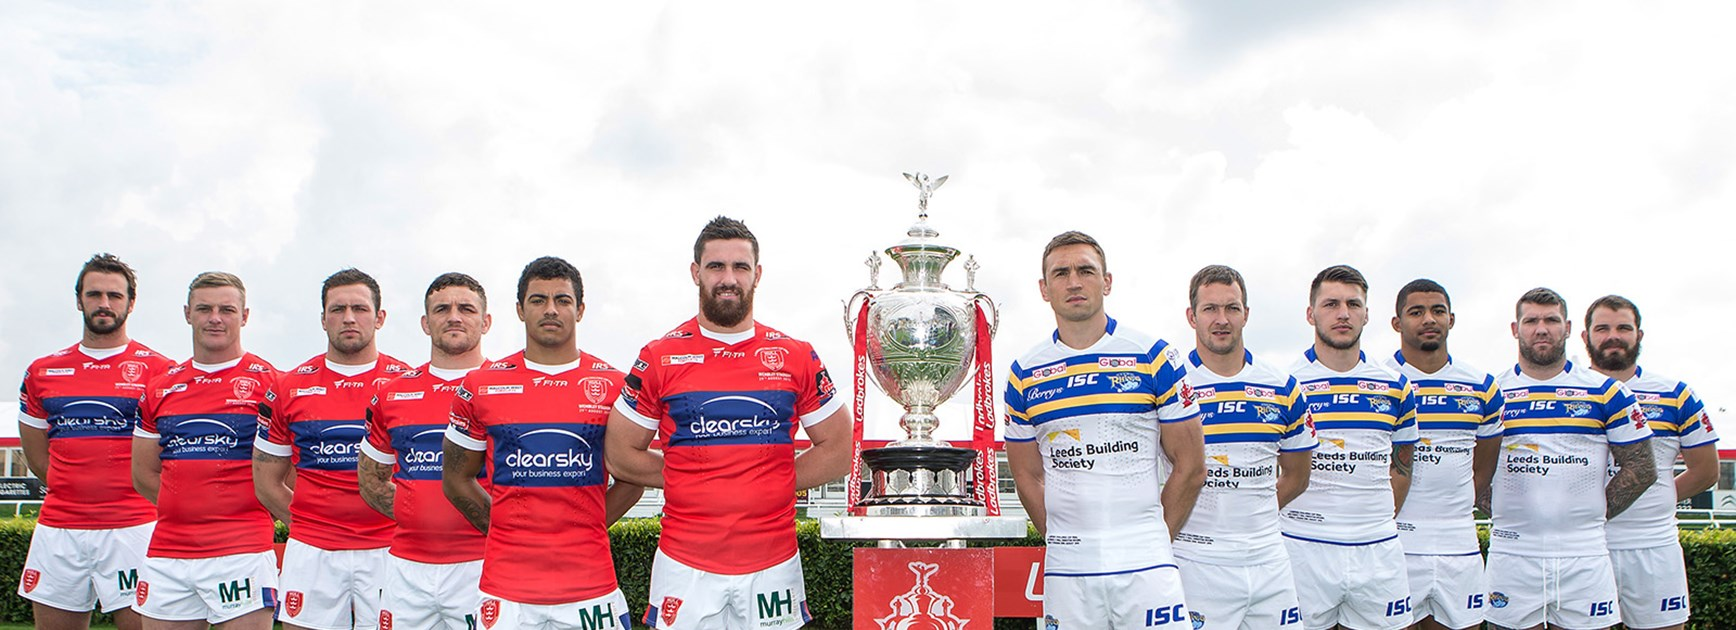 Hull KR and Leeds Rhinos meet in the Challenge Cup Final on Saturday night.